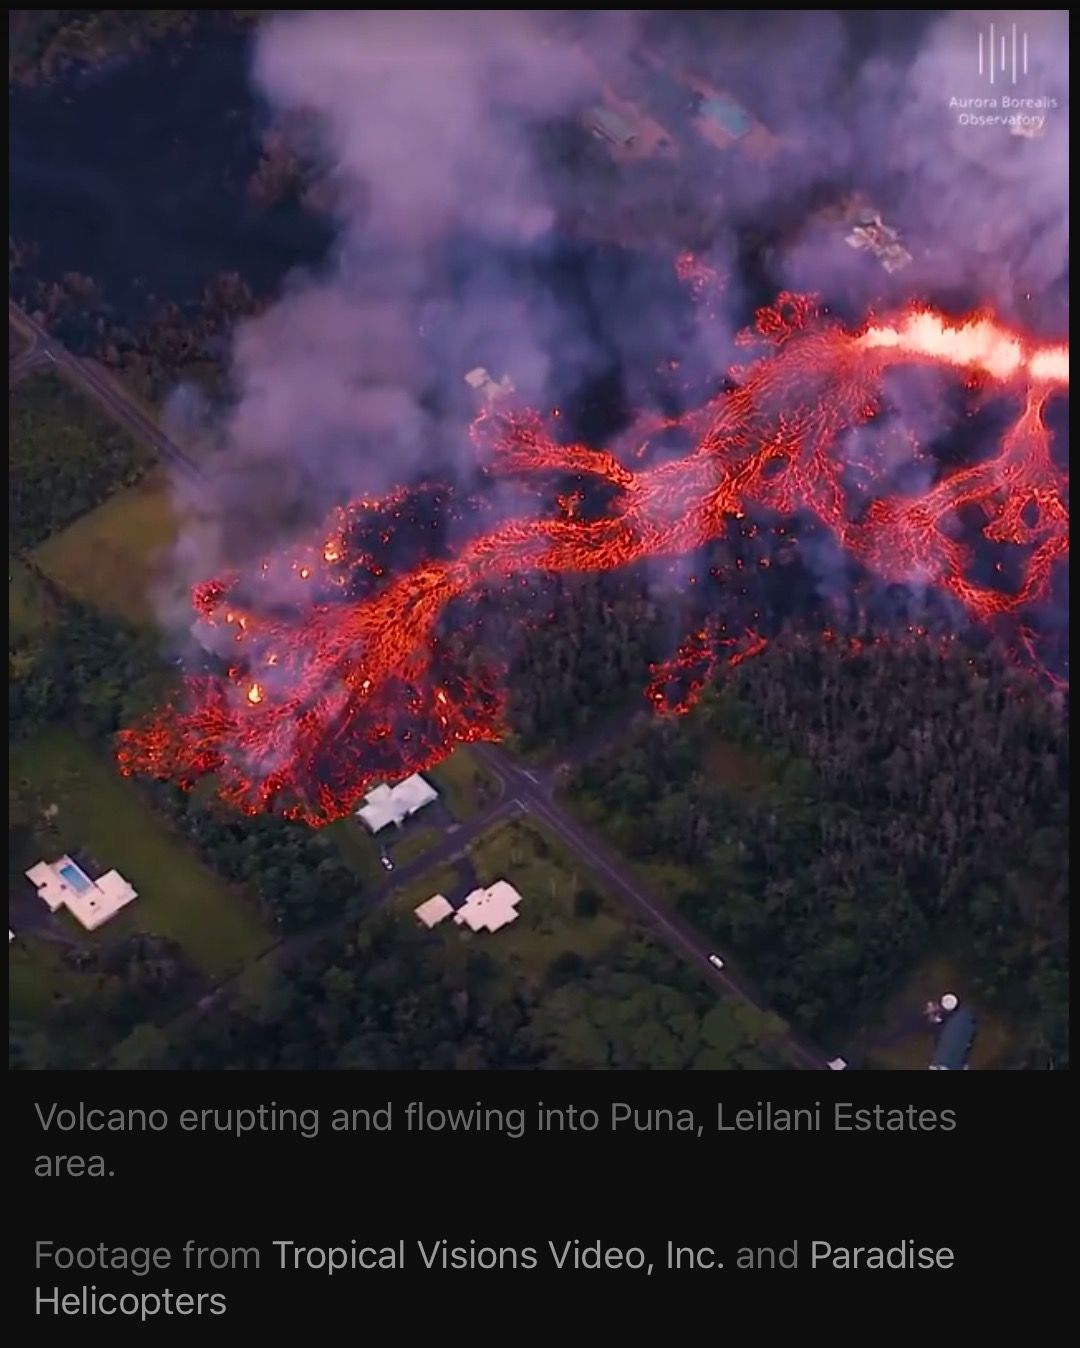 Kilauea Volcano eruption on main island, Hawaii. May 9, 2018